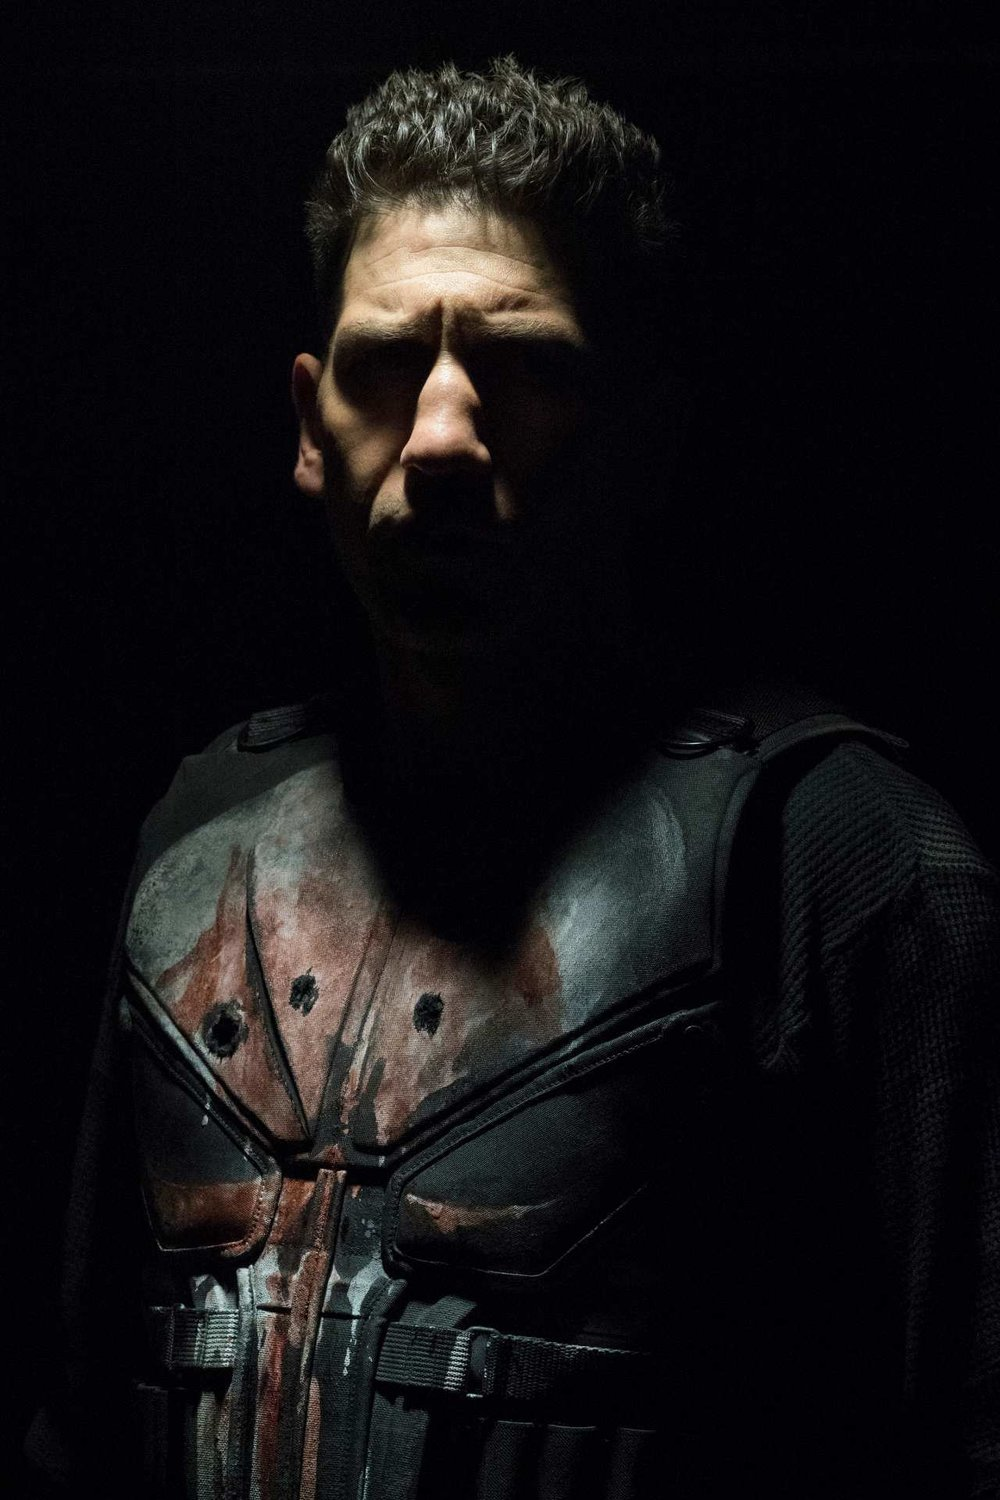 punisher-season-2-gets-a-new-teaser-trailer-premiere-date-and-synopsis3.jpeg